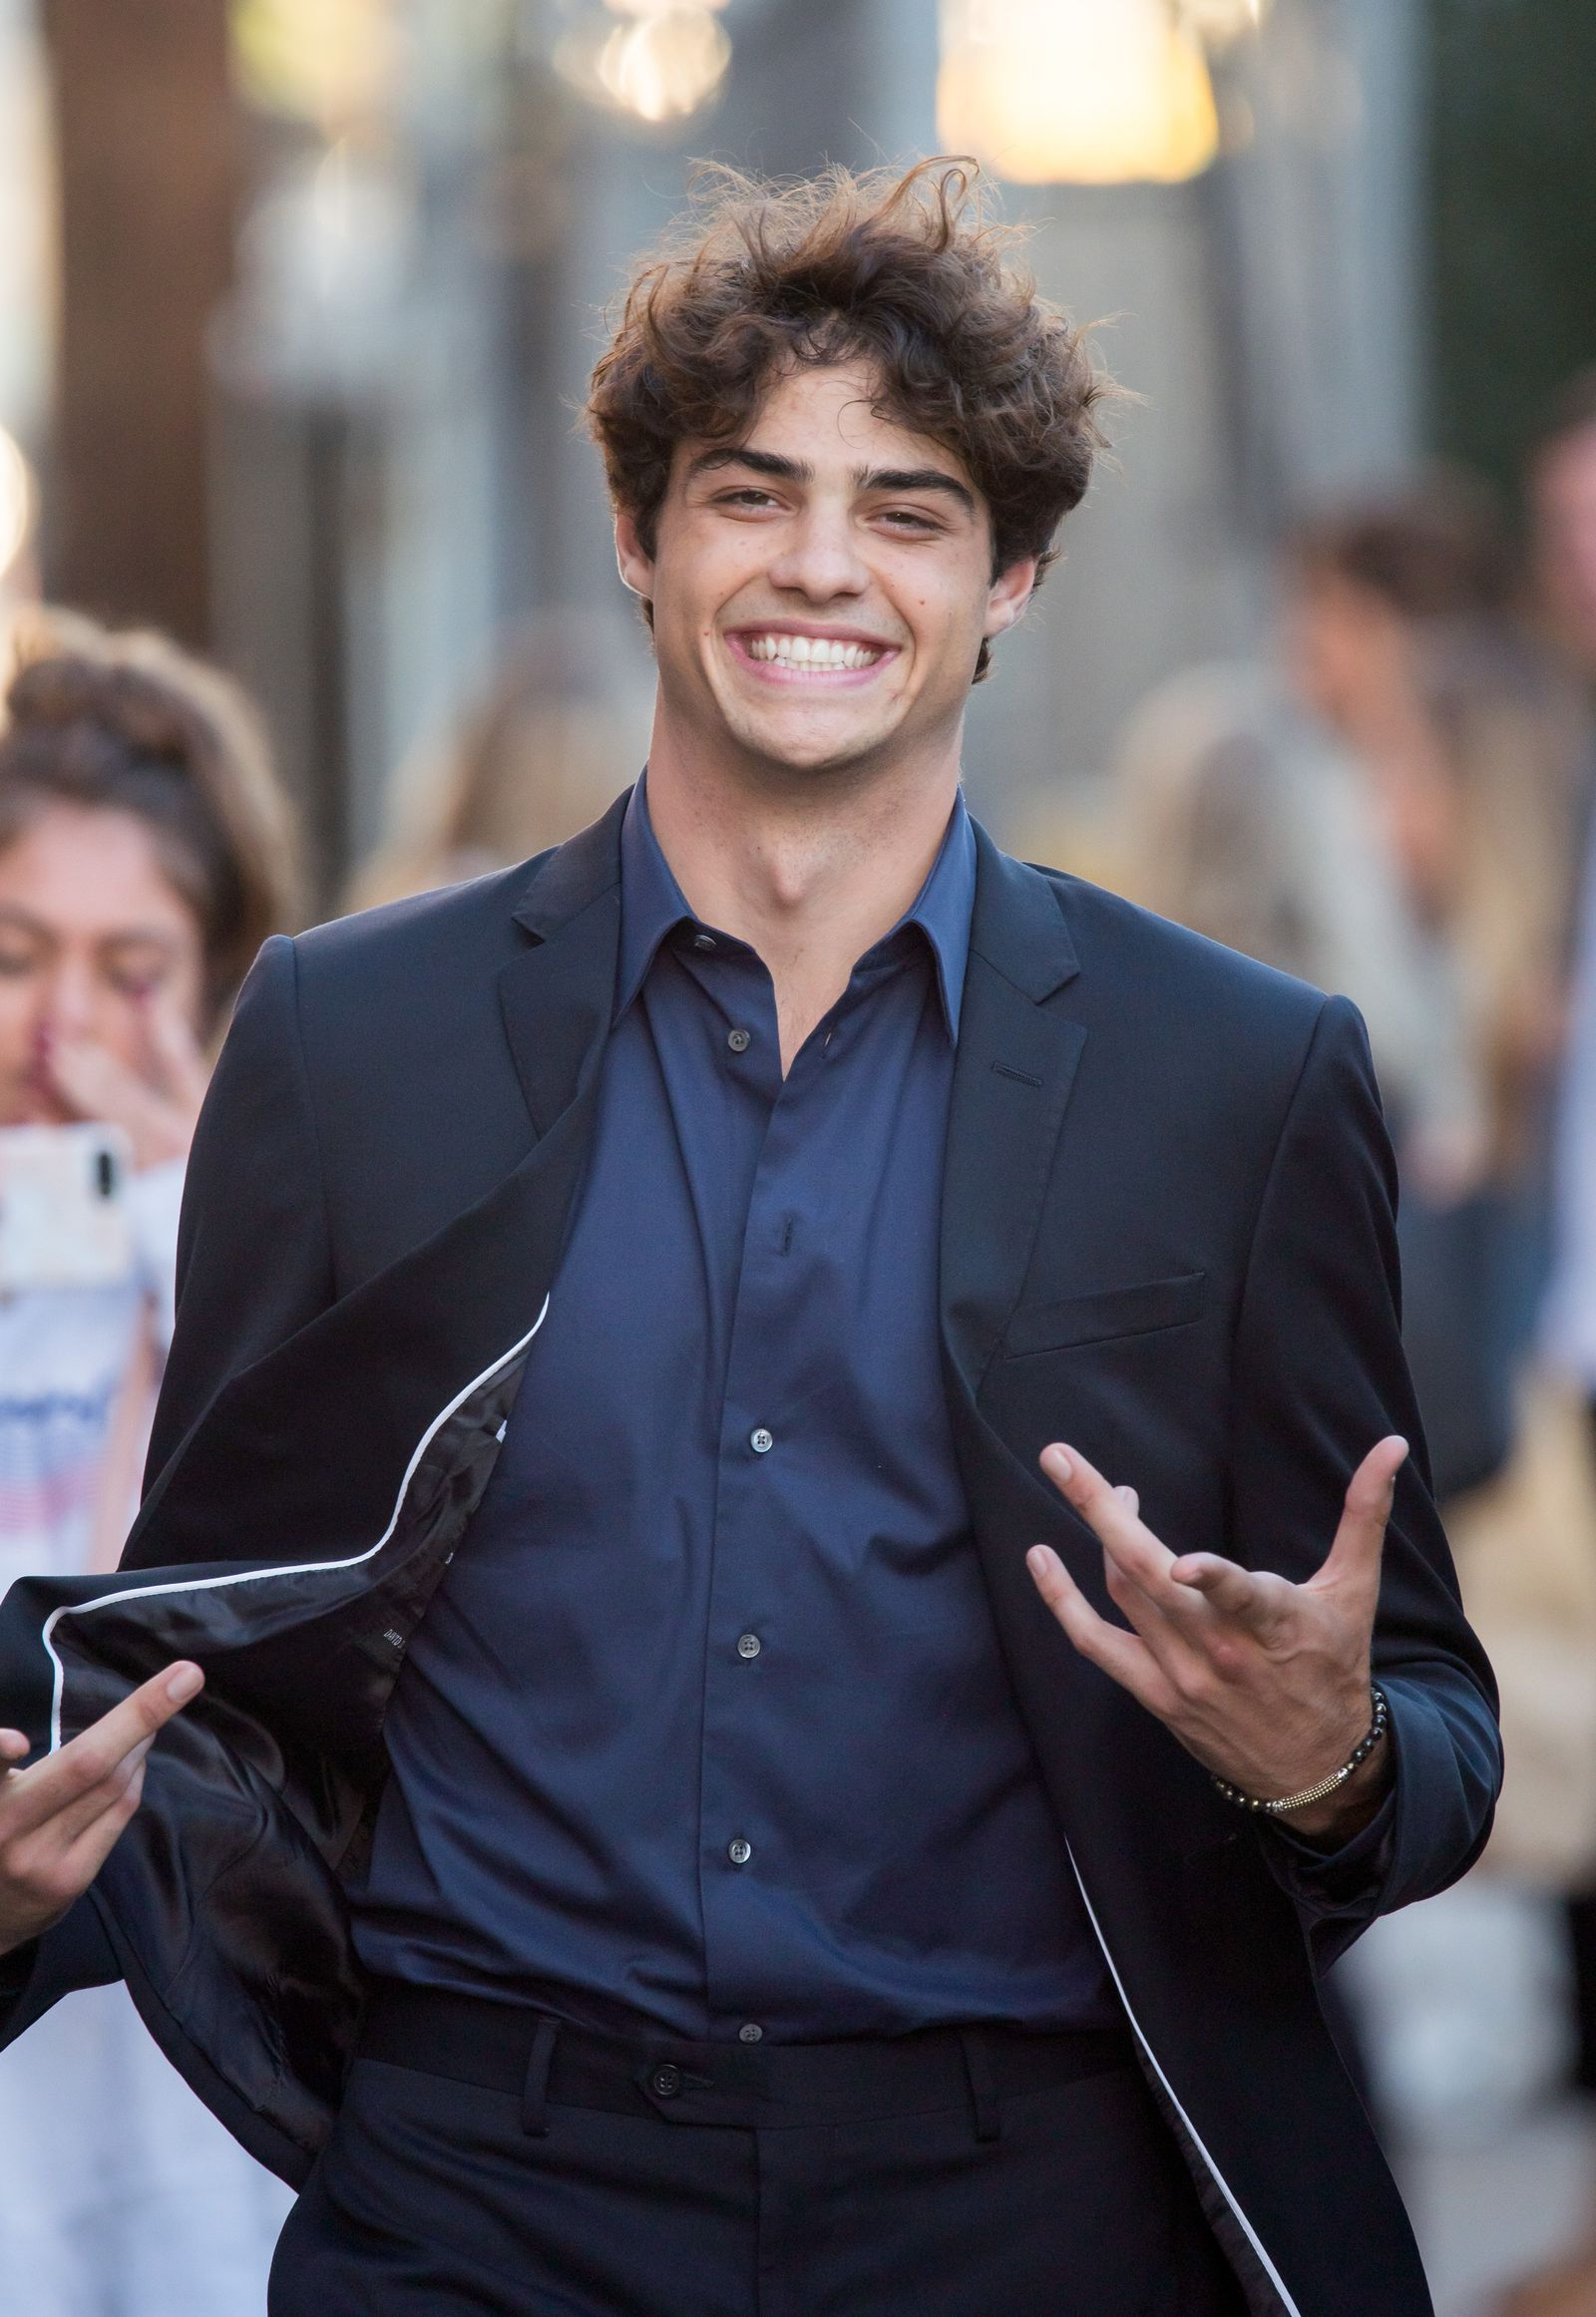 Noah Centineo Was Being Stalked by Fans, and Calls the Experience Scary